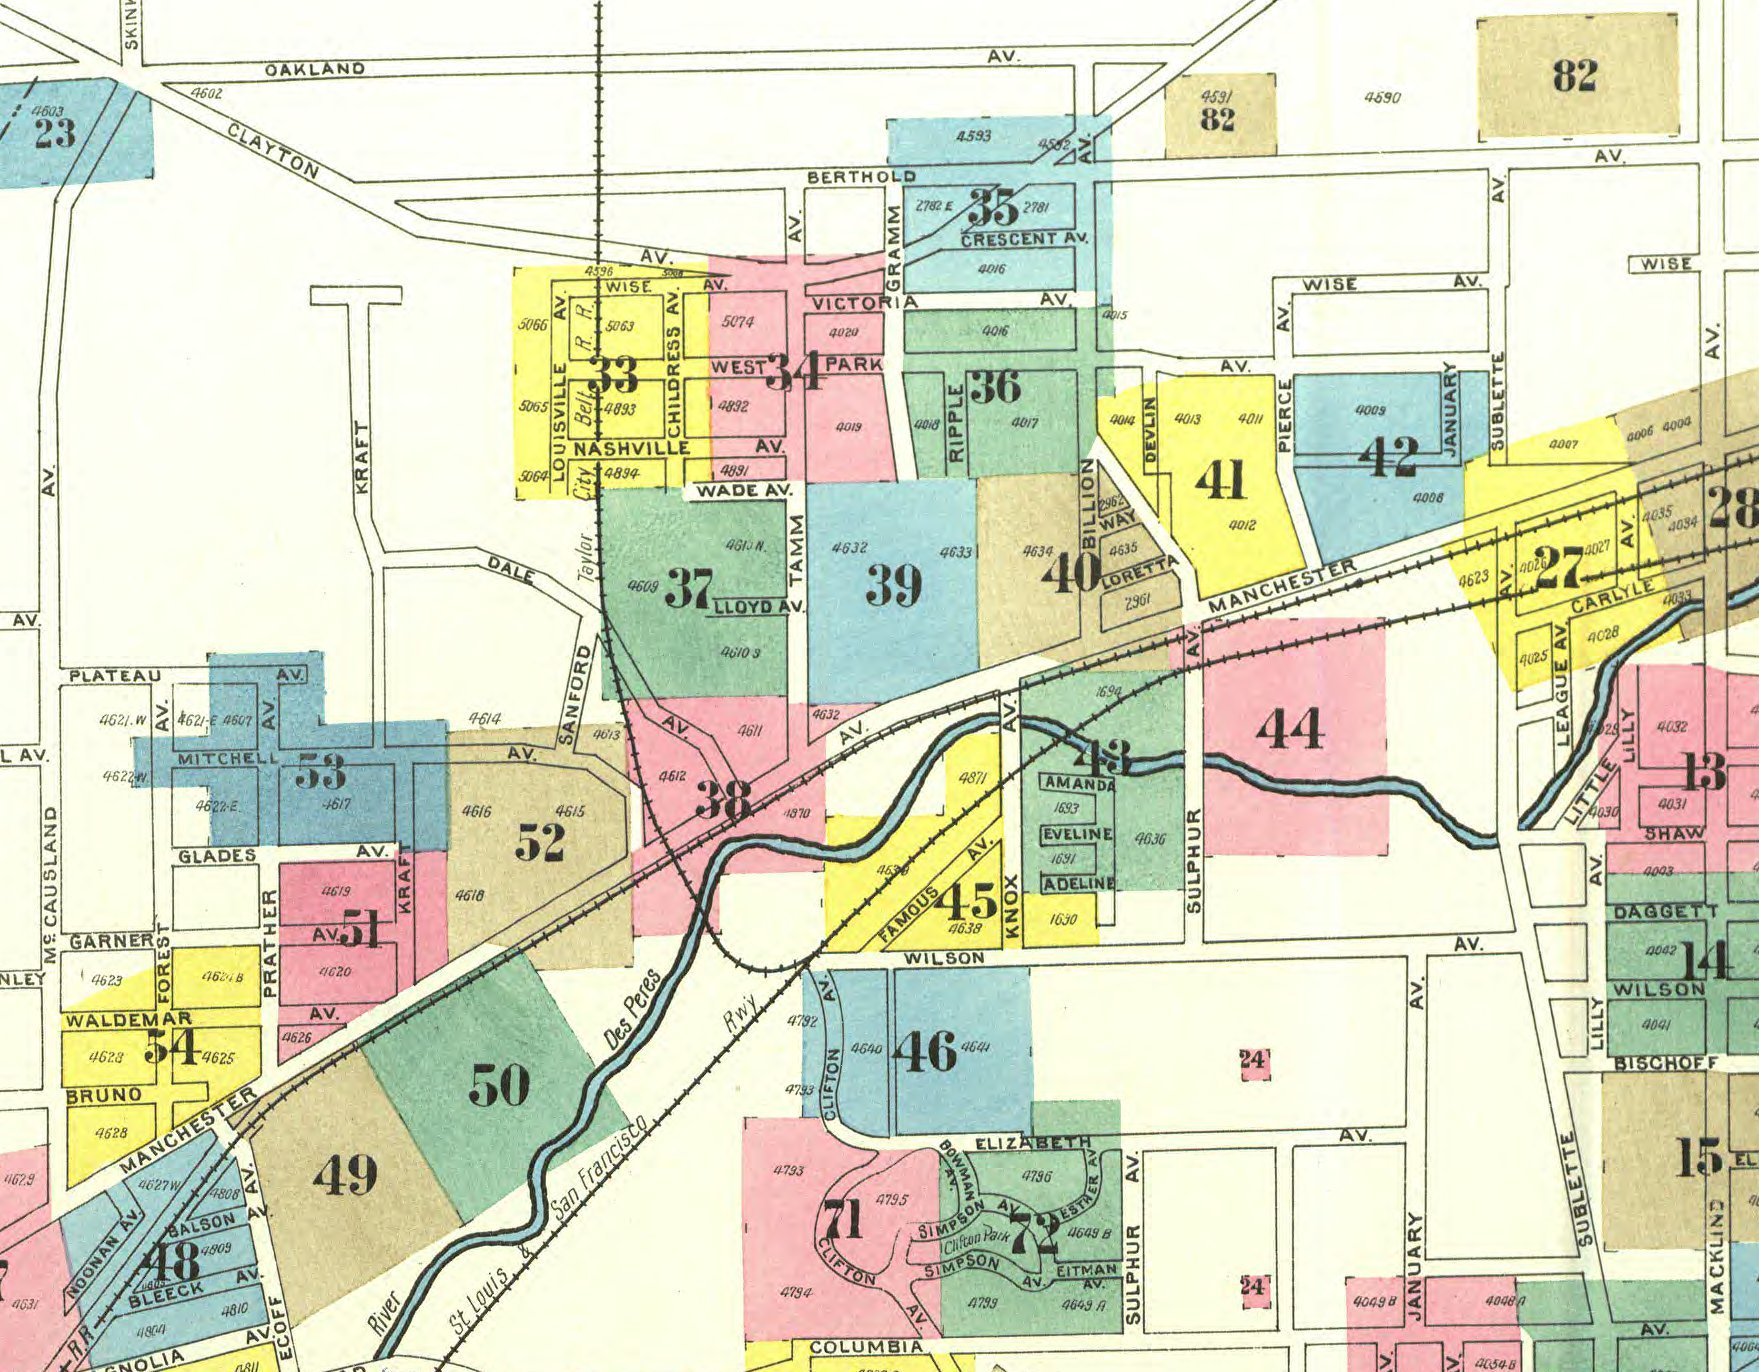 Dogtown -- Map of Dogtown in 1903 -- Sanborn Fire Maps on